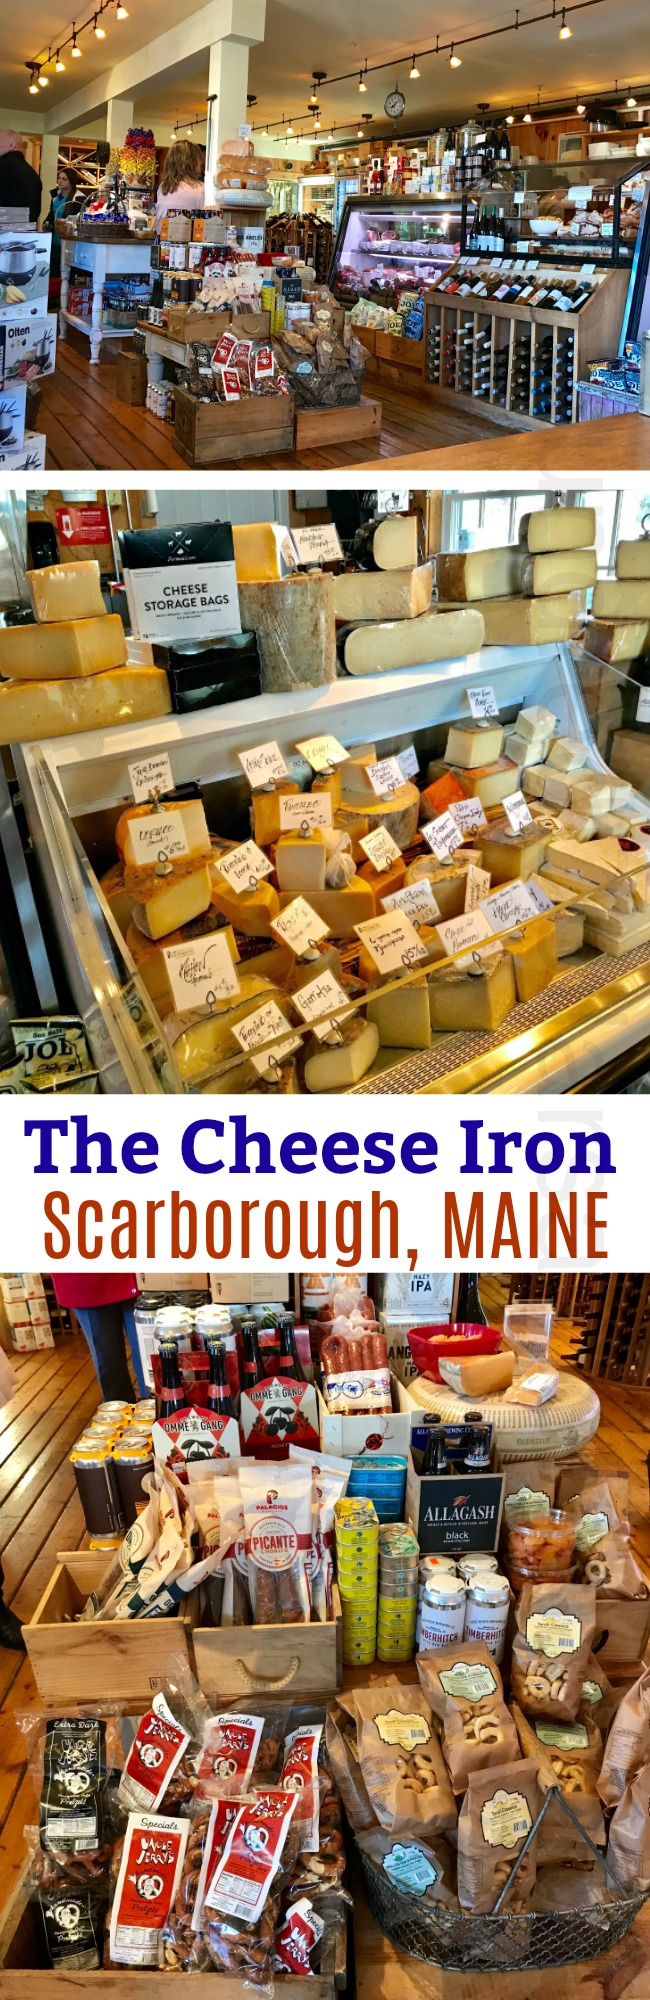 The Cheese Iron – Scarborough, Maine